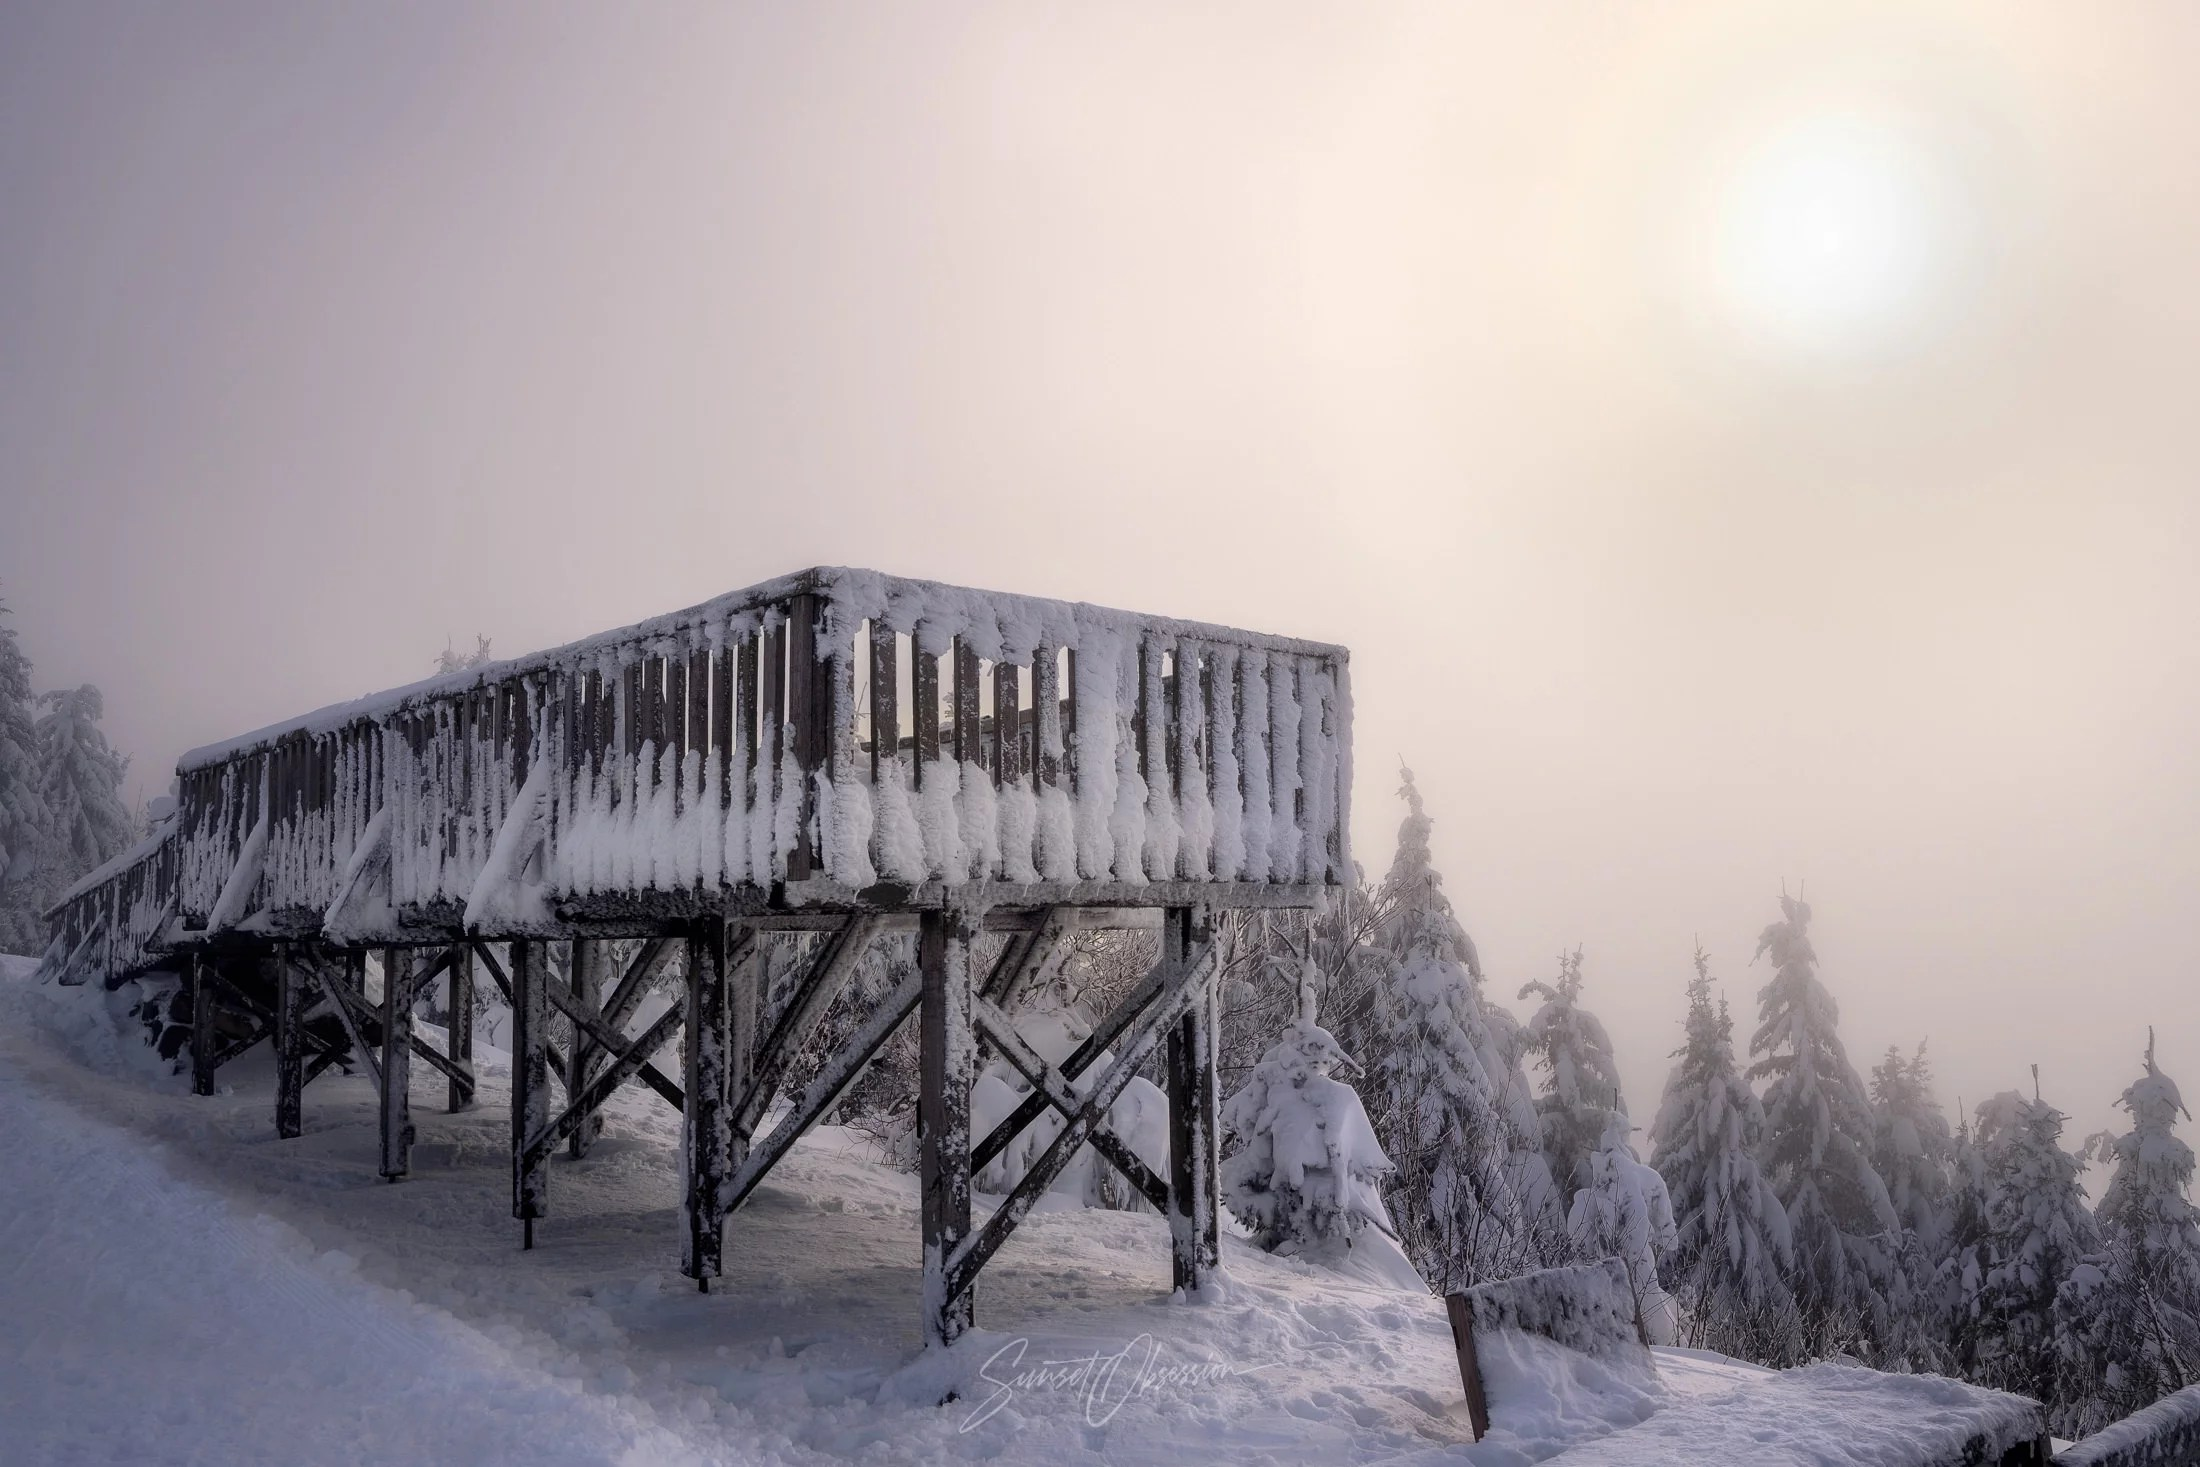 A frozen viewing platform in the midst of Black Forest, Germany